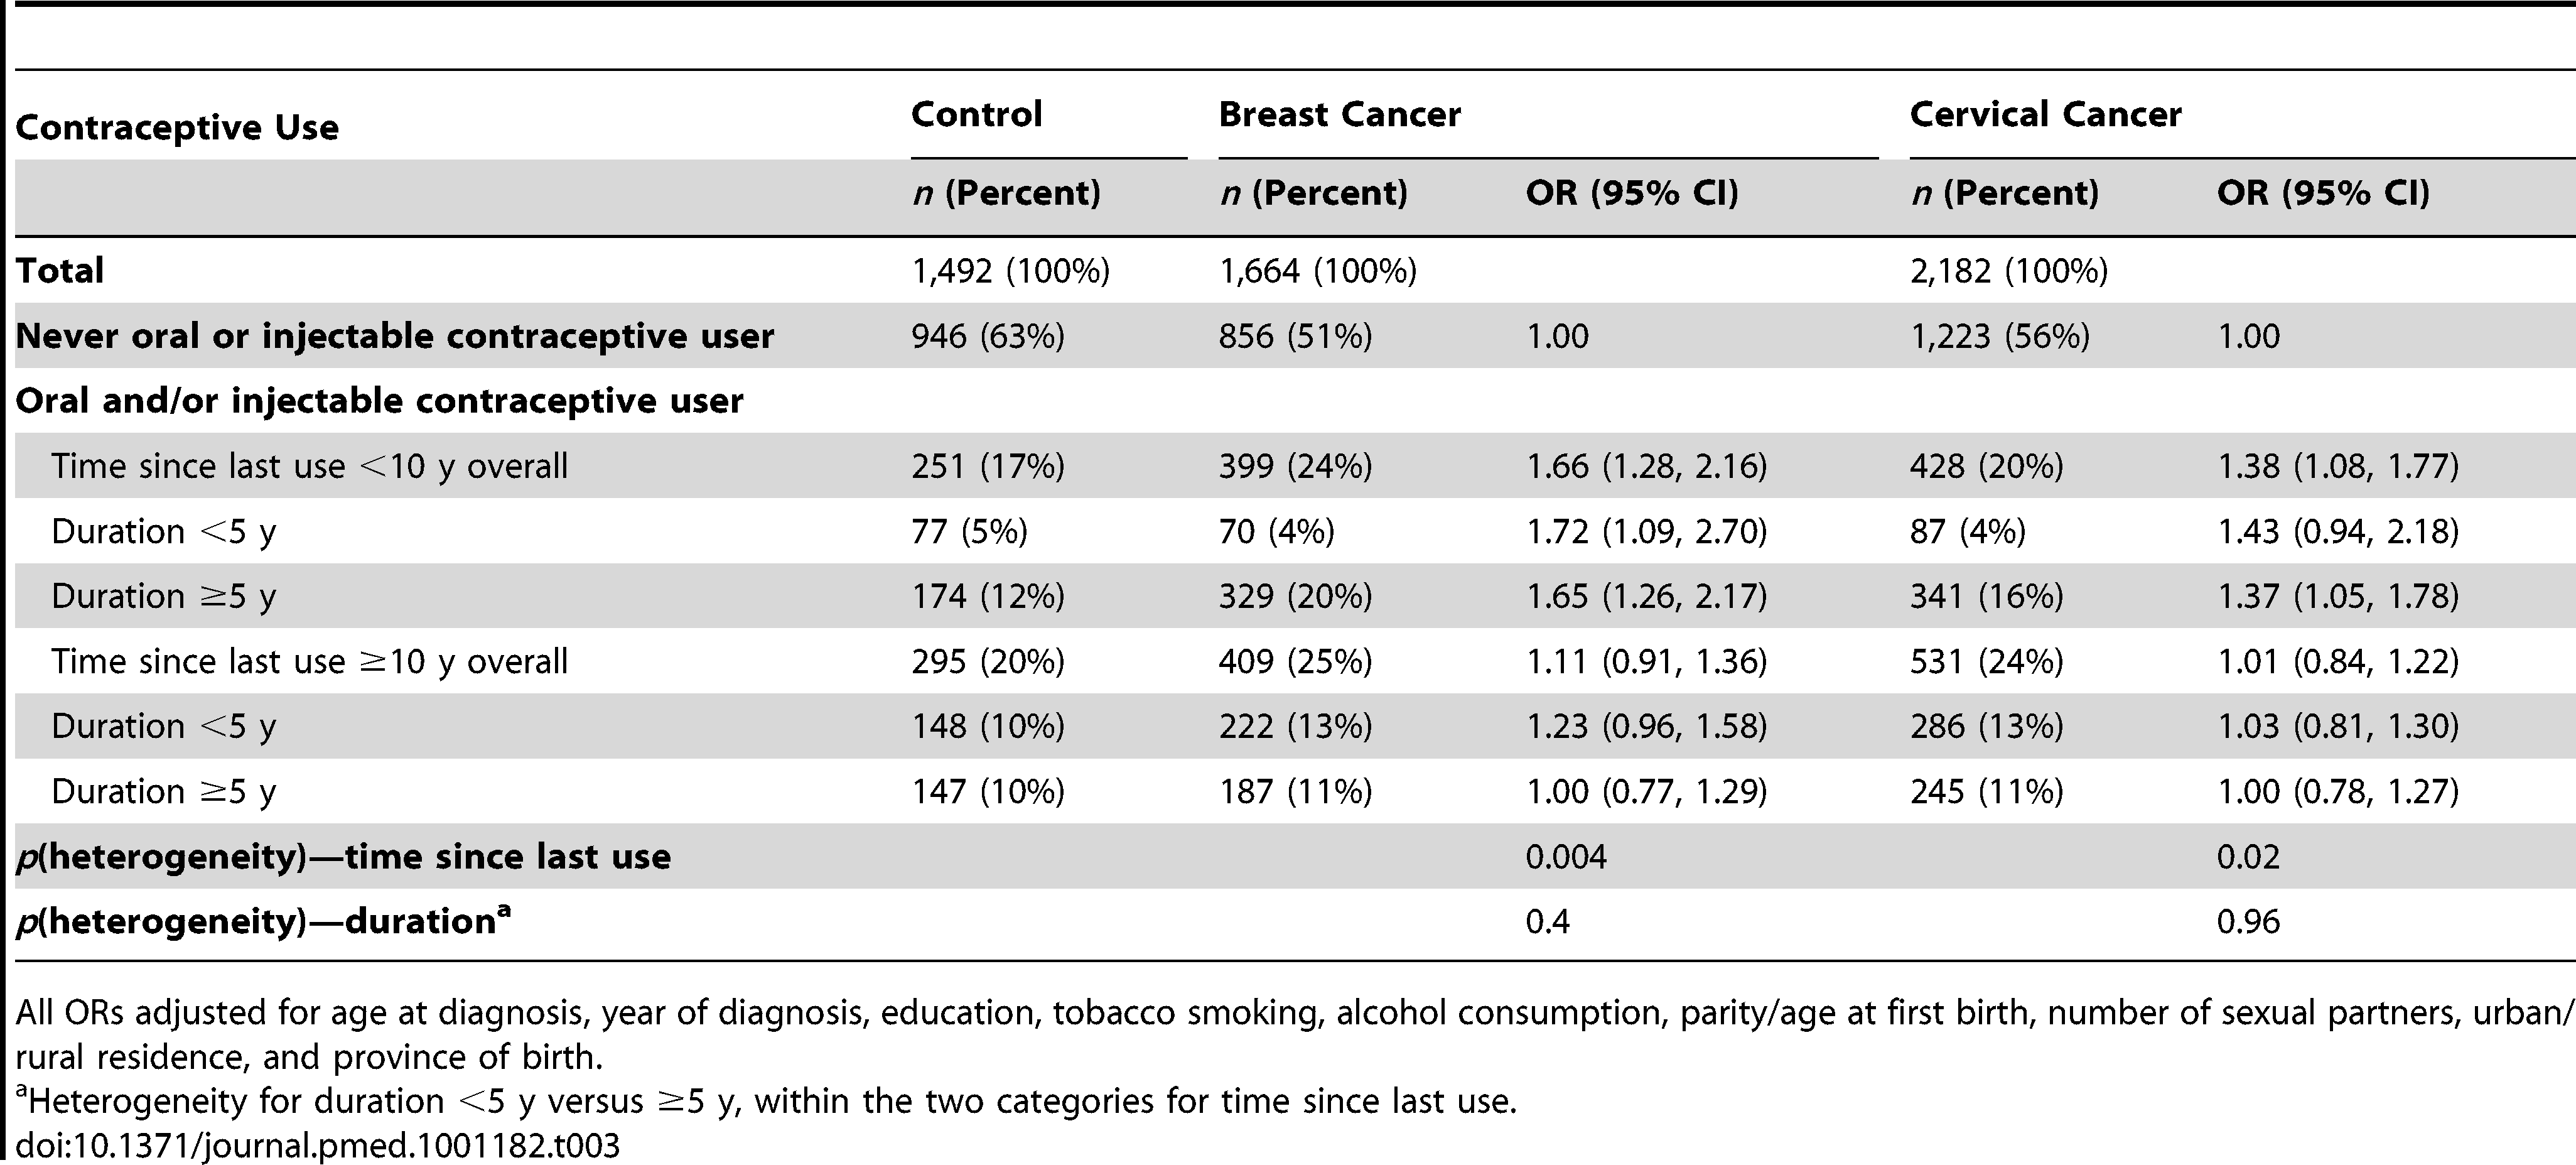 Adjusted odds ratios for breast and cervical cancer, according to time since last use and duration of use of oral and injectable contraceptives.